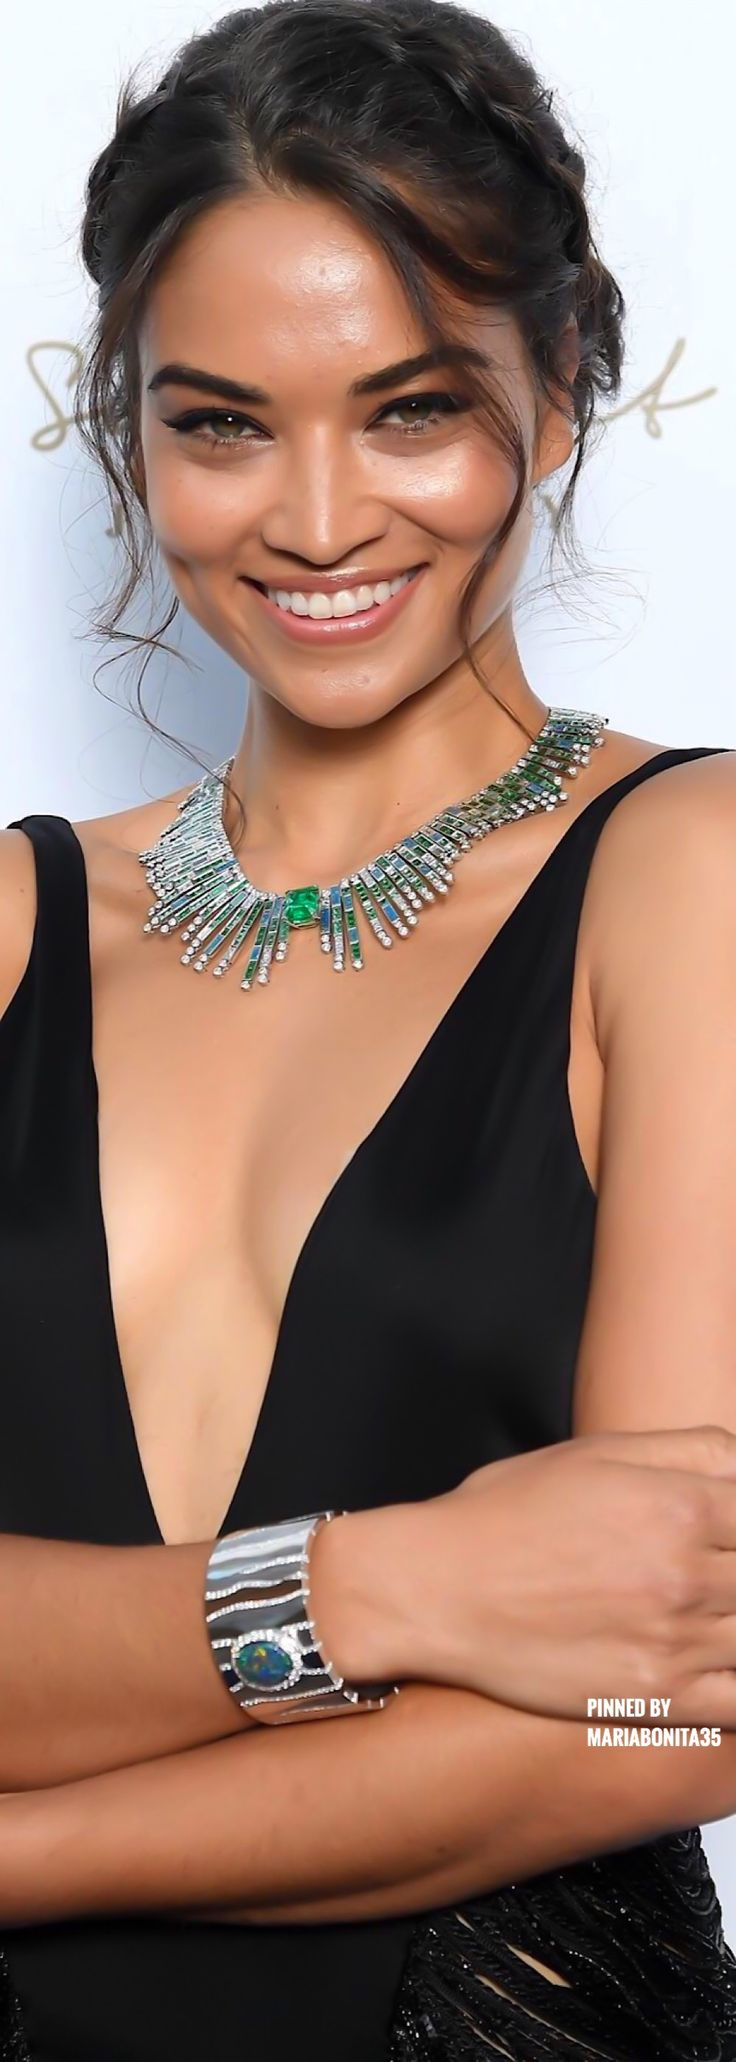 Shanina Shaik wearing Piaget Diamonds